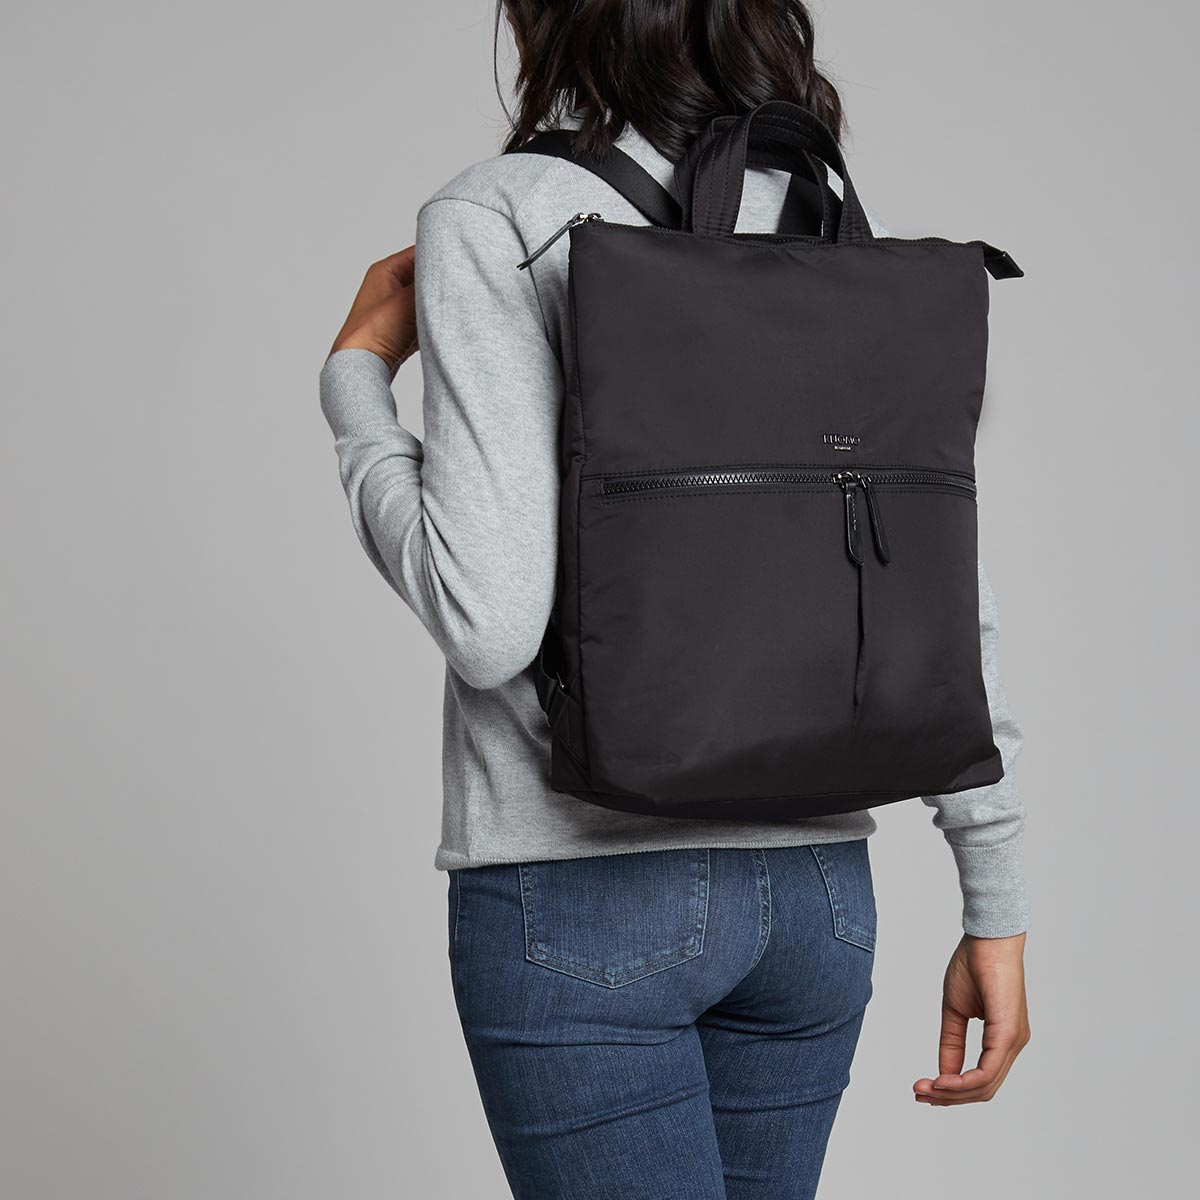 "Reykjavik Laptop Tote Backpack - 15"" -  Black 